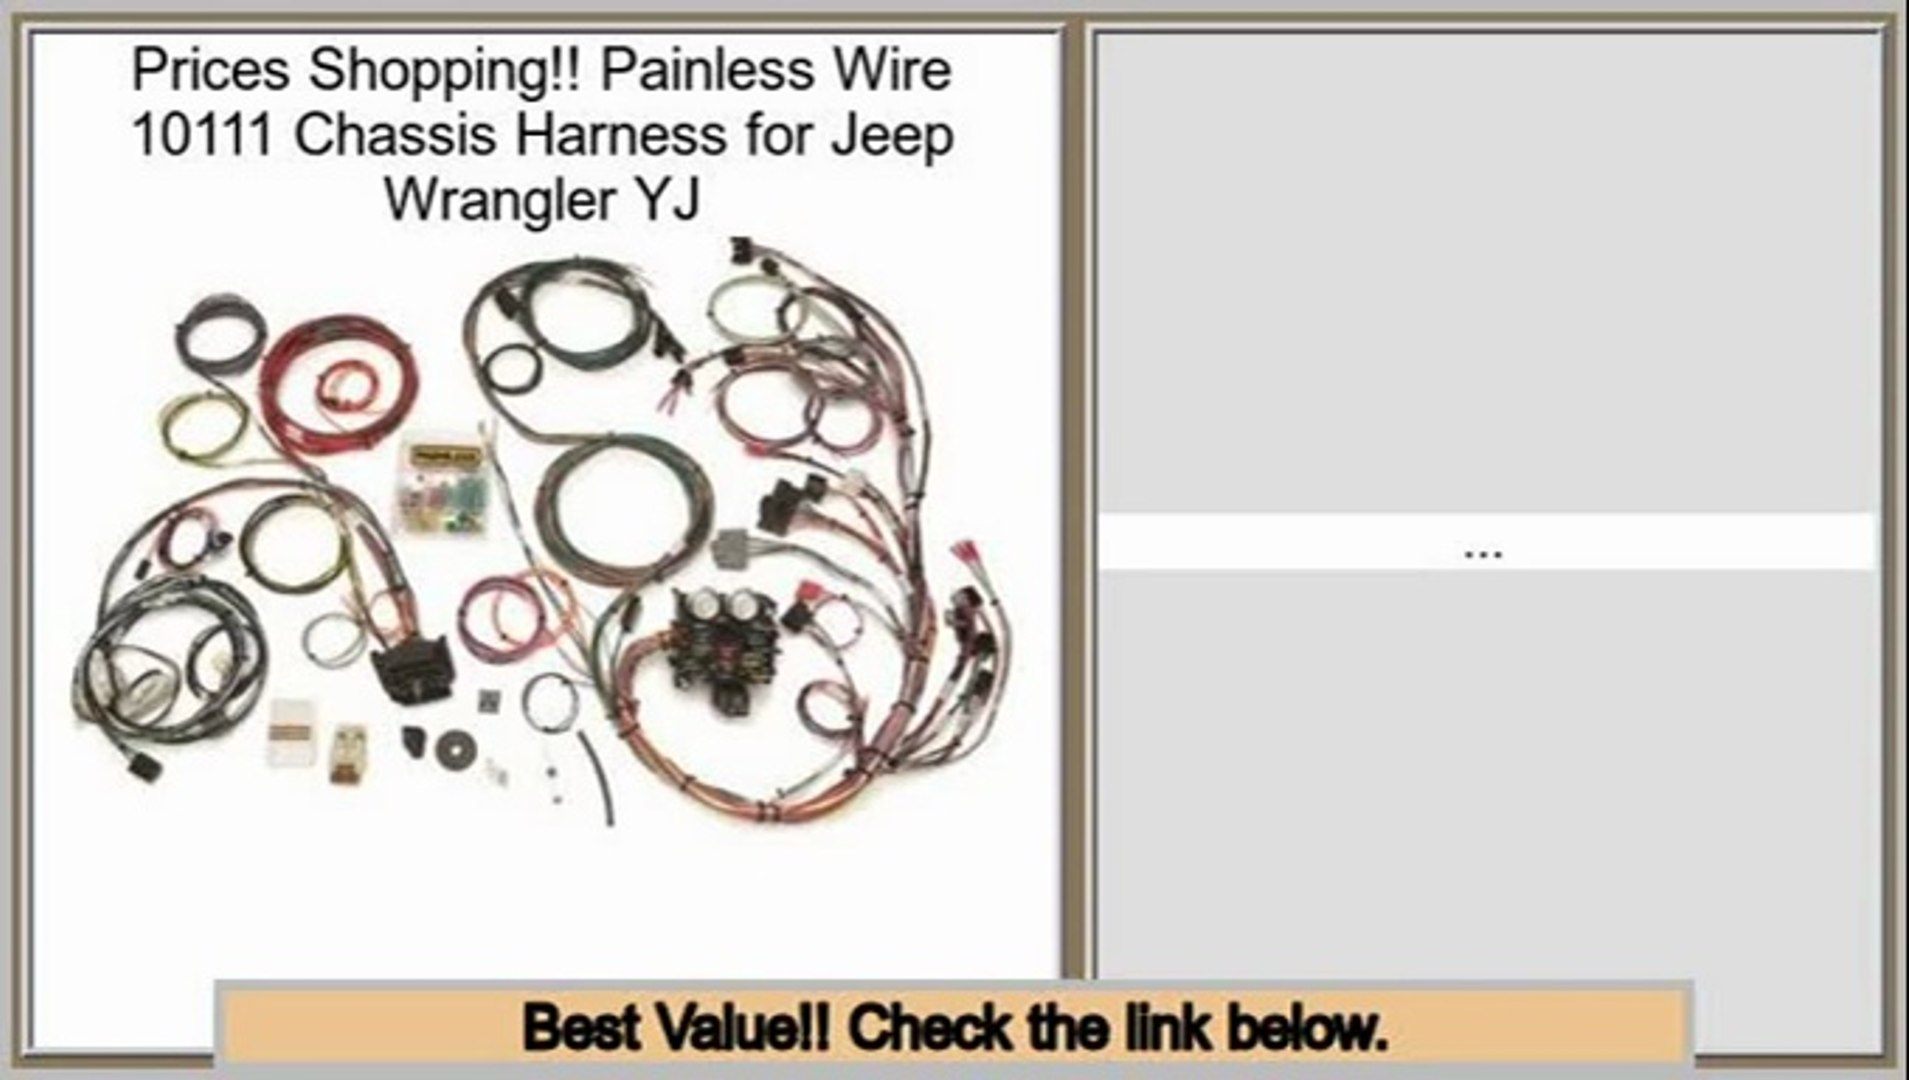 Reviews And Ratings Painless Wire 10111 Chis Harness for Jeep Wrangler on duraspark harness, 5 point harness, radio harness, 1972 chevy truck harness, ford 5.0 fuel injection harness, racing seat harness, dodge ram injector harness, electrical harness, horse team harness, painless fuse box, 5.3 vortec swap harness, bully dog harness, front lead dog harness, horse driving harness, fuel injector harness, painless engine harness, chevy tbi harness, rover series 3 diesel harness, car harness, indestructible dog harness,